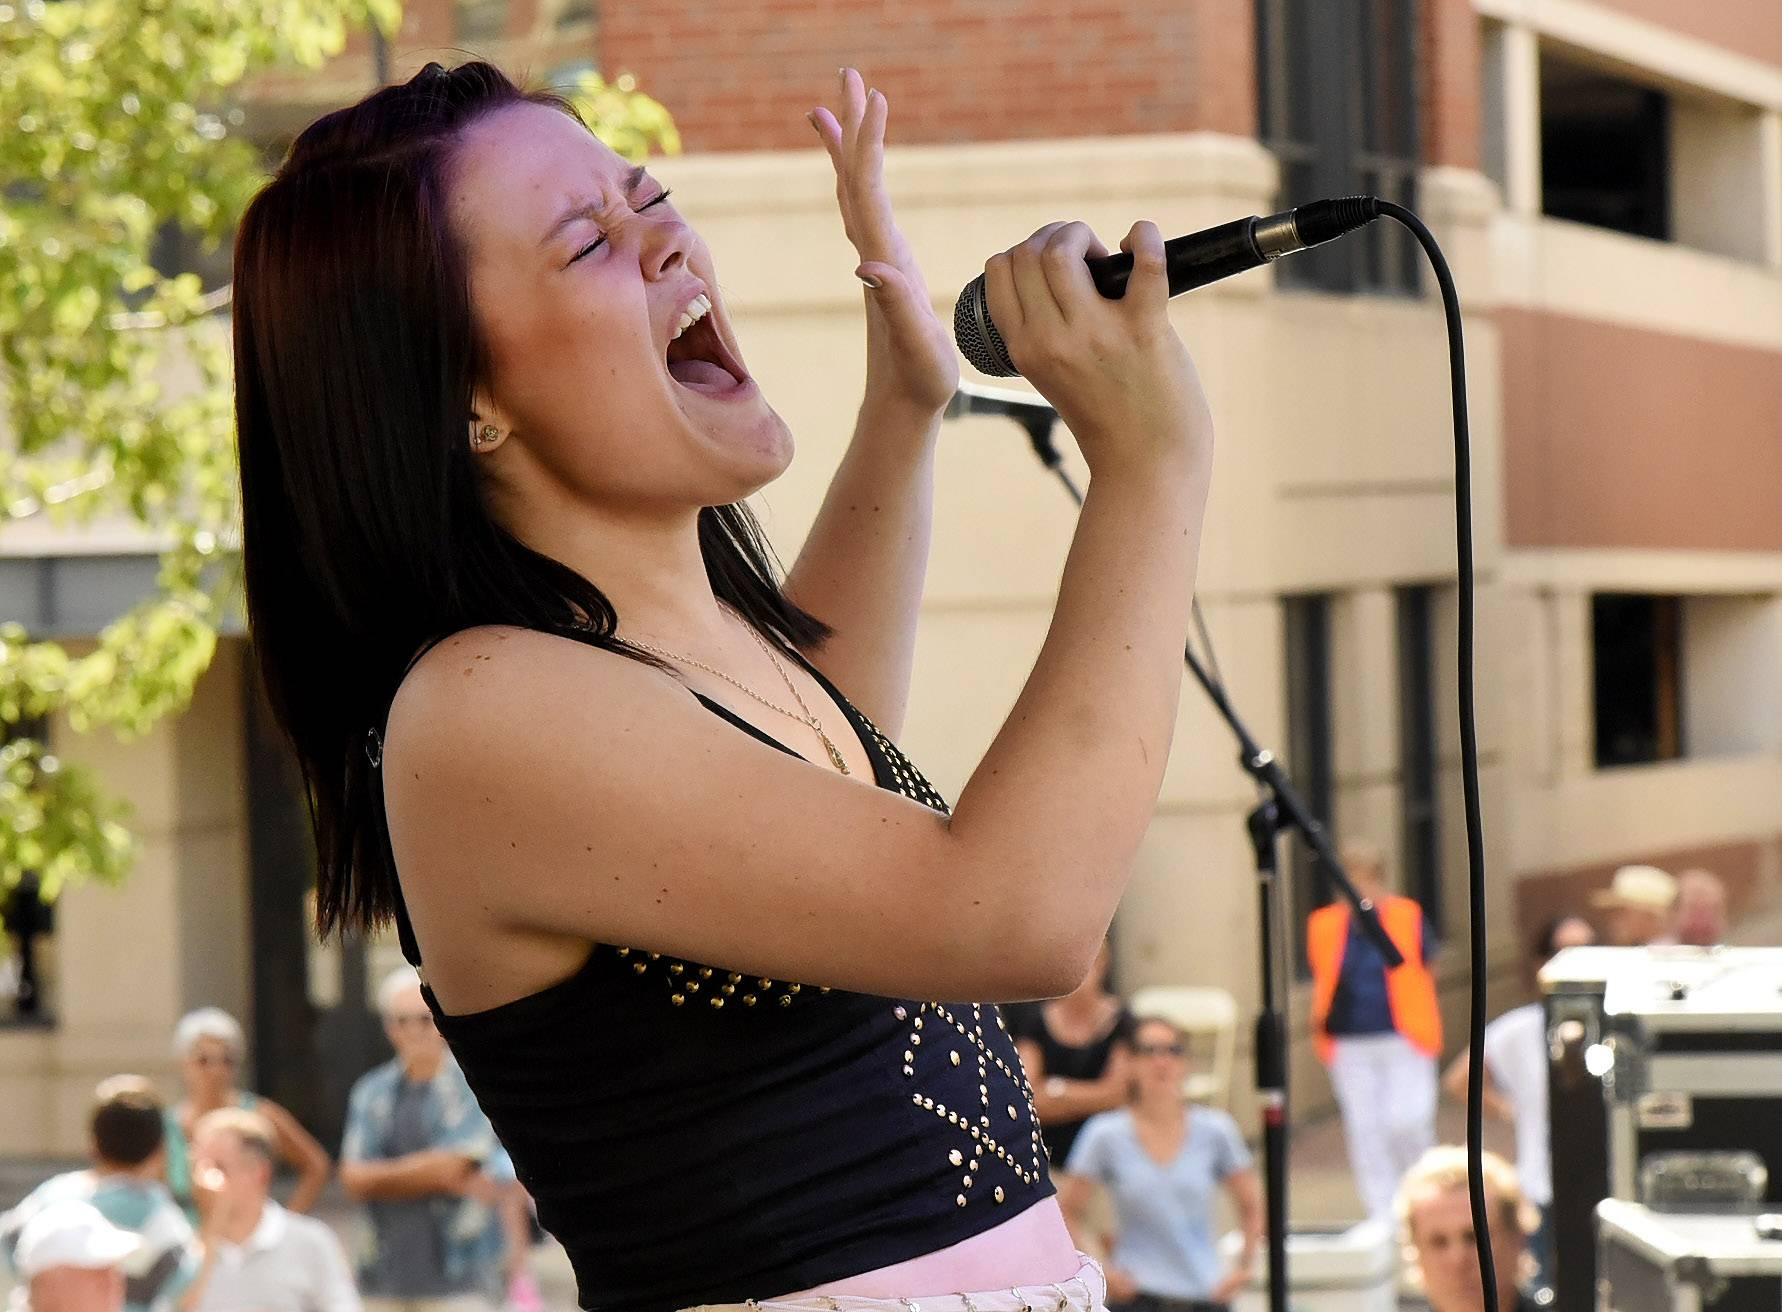 This year's winner of Suburban Chicago's Got Talent, San Star Sandberg, performs her act in front of a packed house at the Taste of Arlington Heights in Harmony Park.